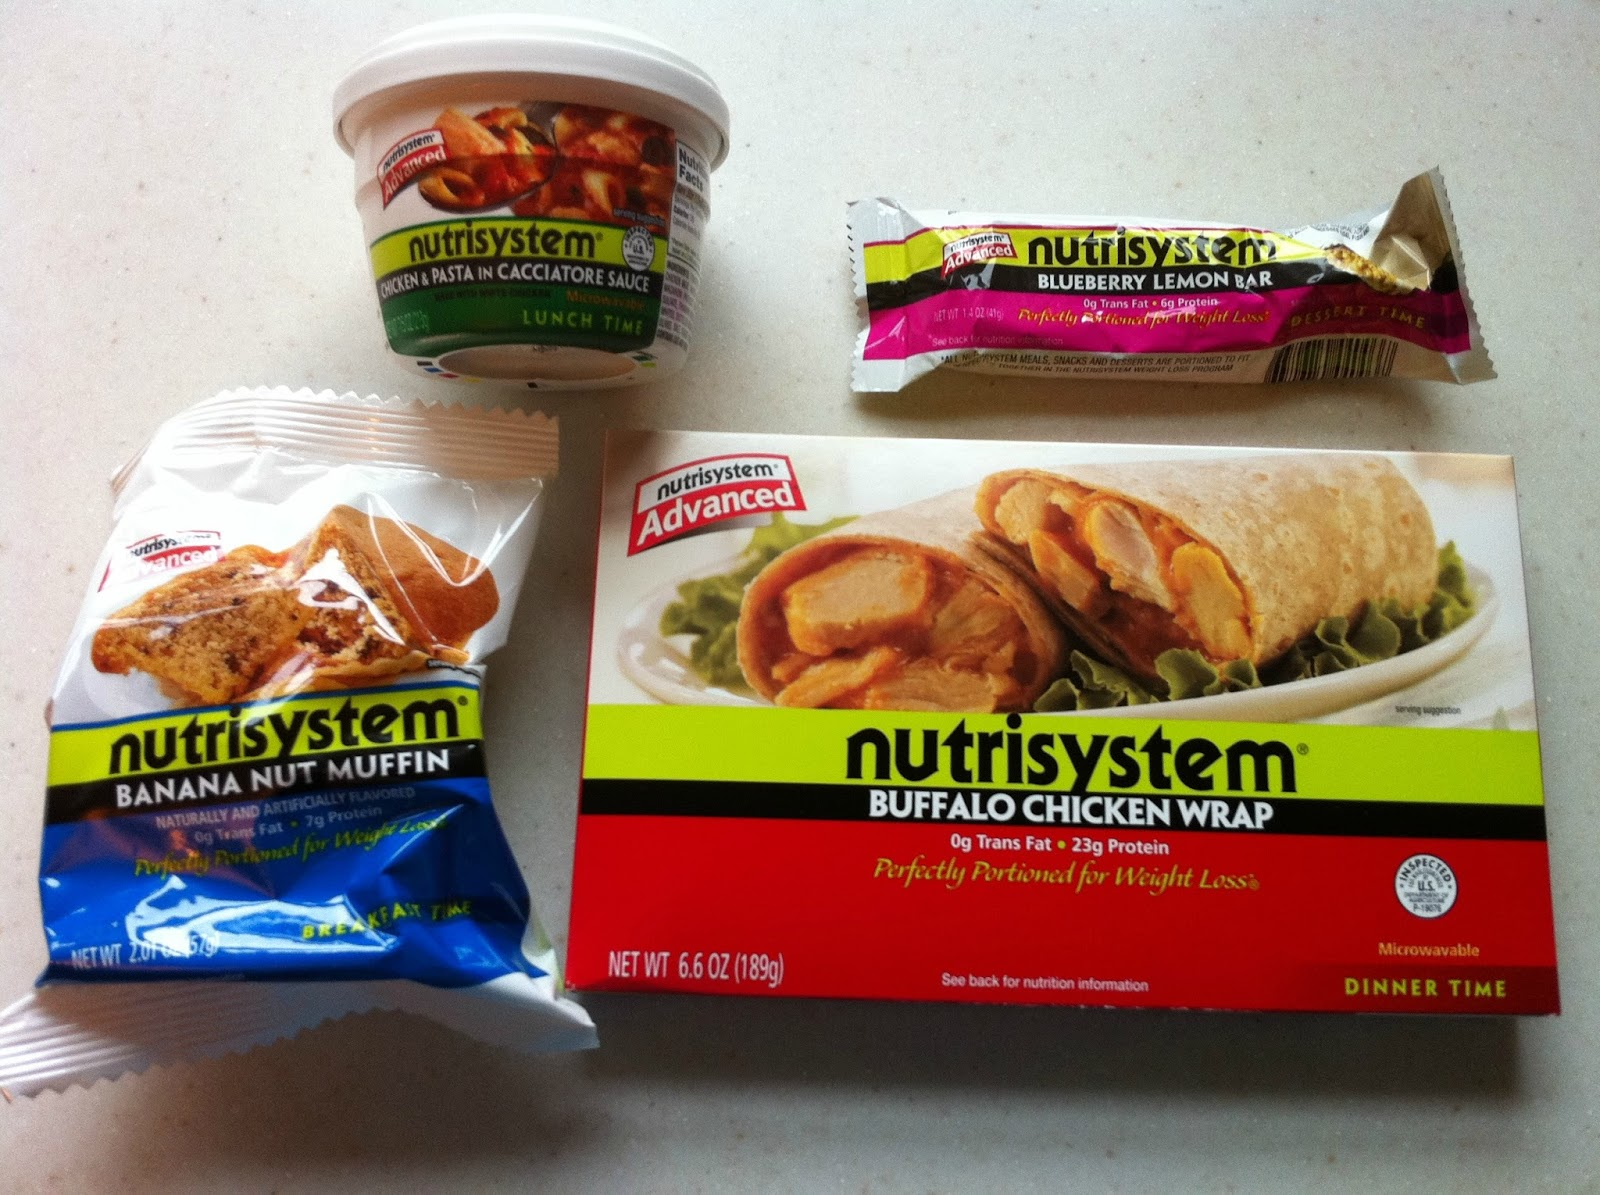 Why Nutrisystem Might Be Bad for Your Health?